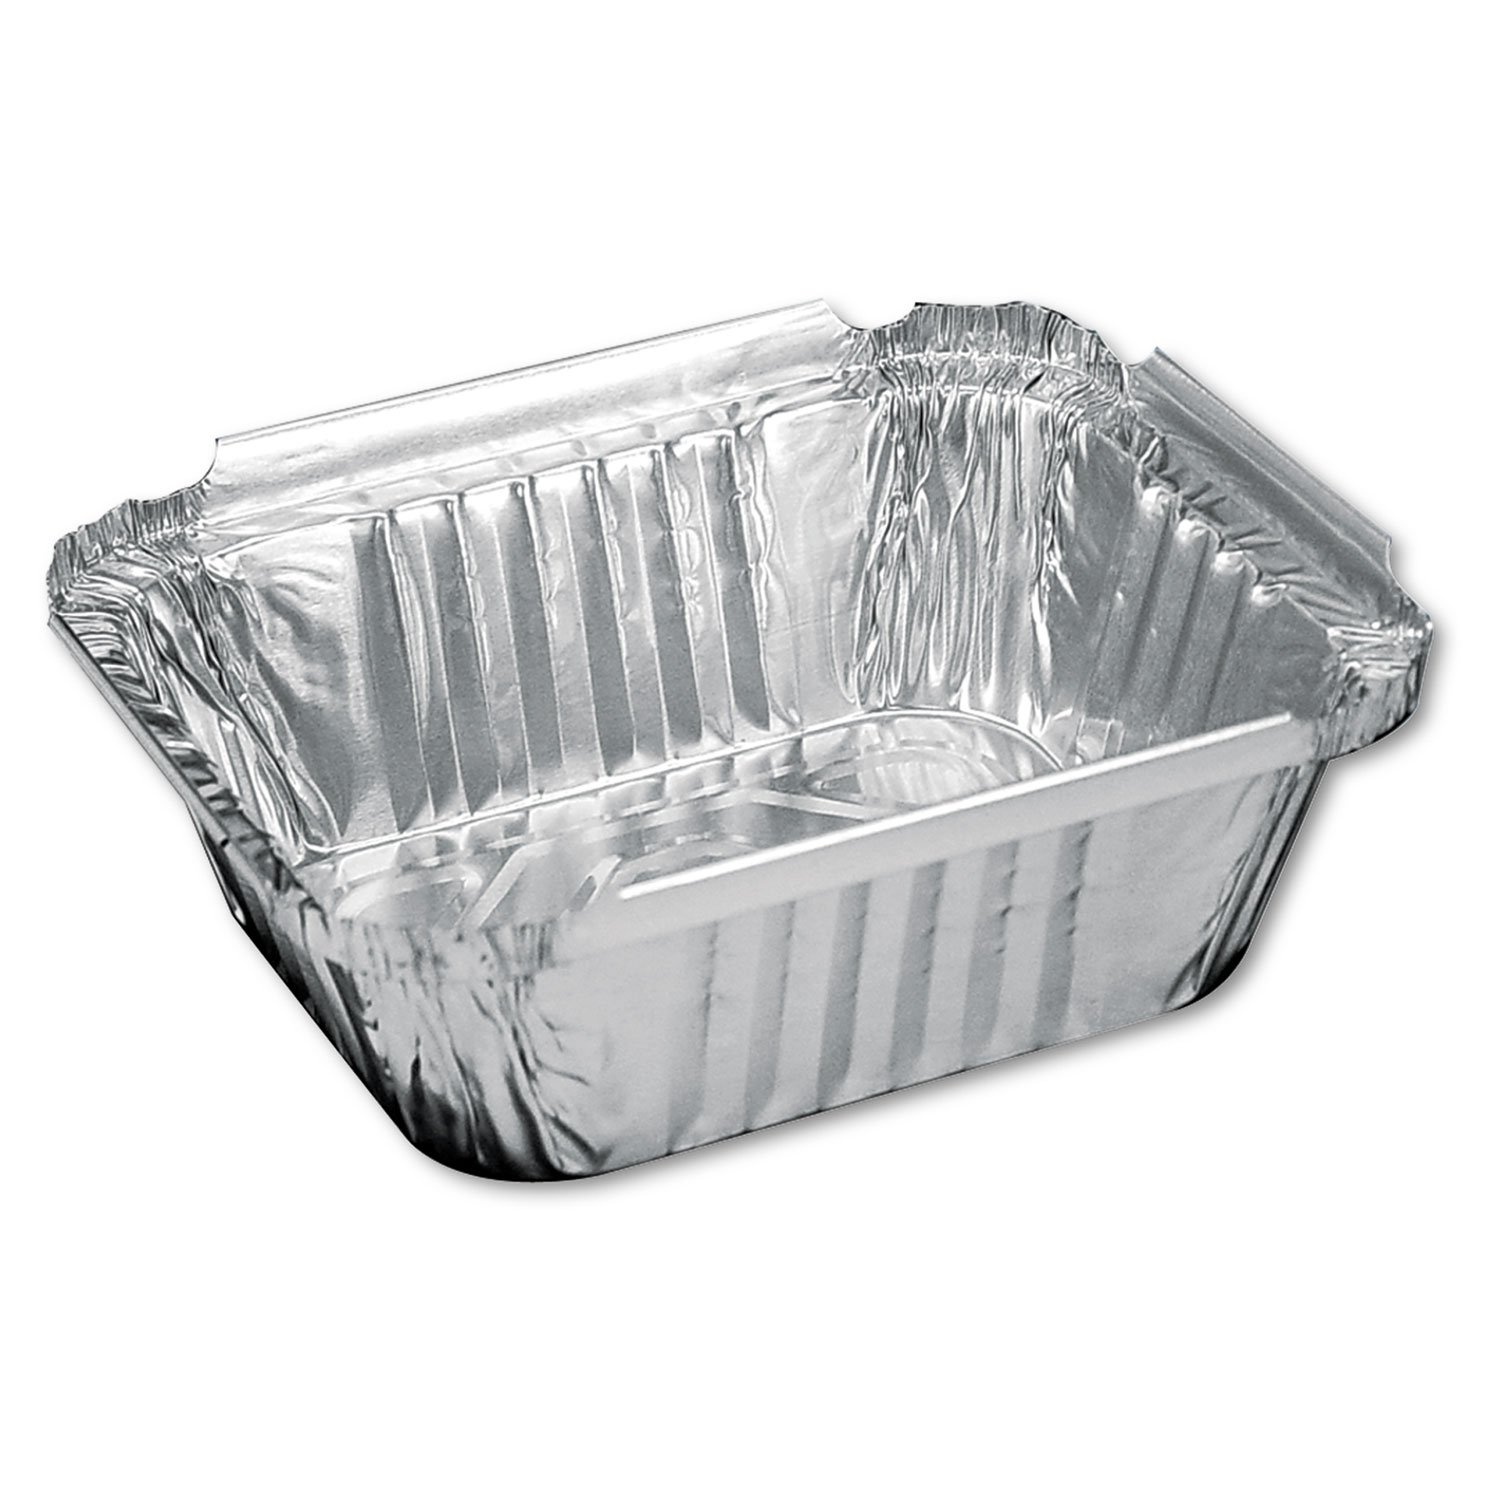 Aluminum Oblong Container, 1 Pound, 5-9/16 X 4-9/16 X 1-5/8 By: Handi-Foil of America by Office Realm